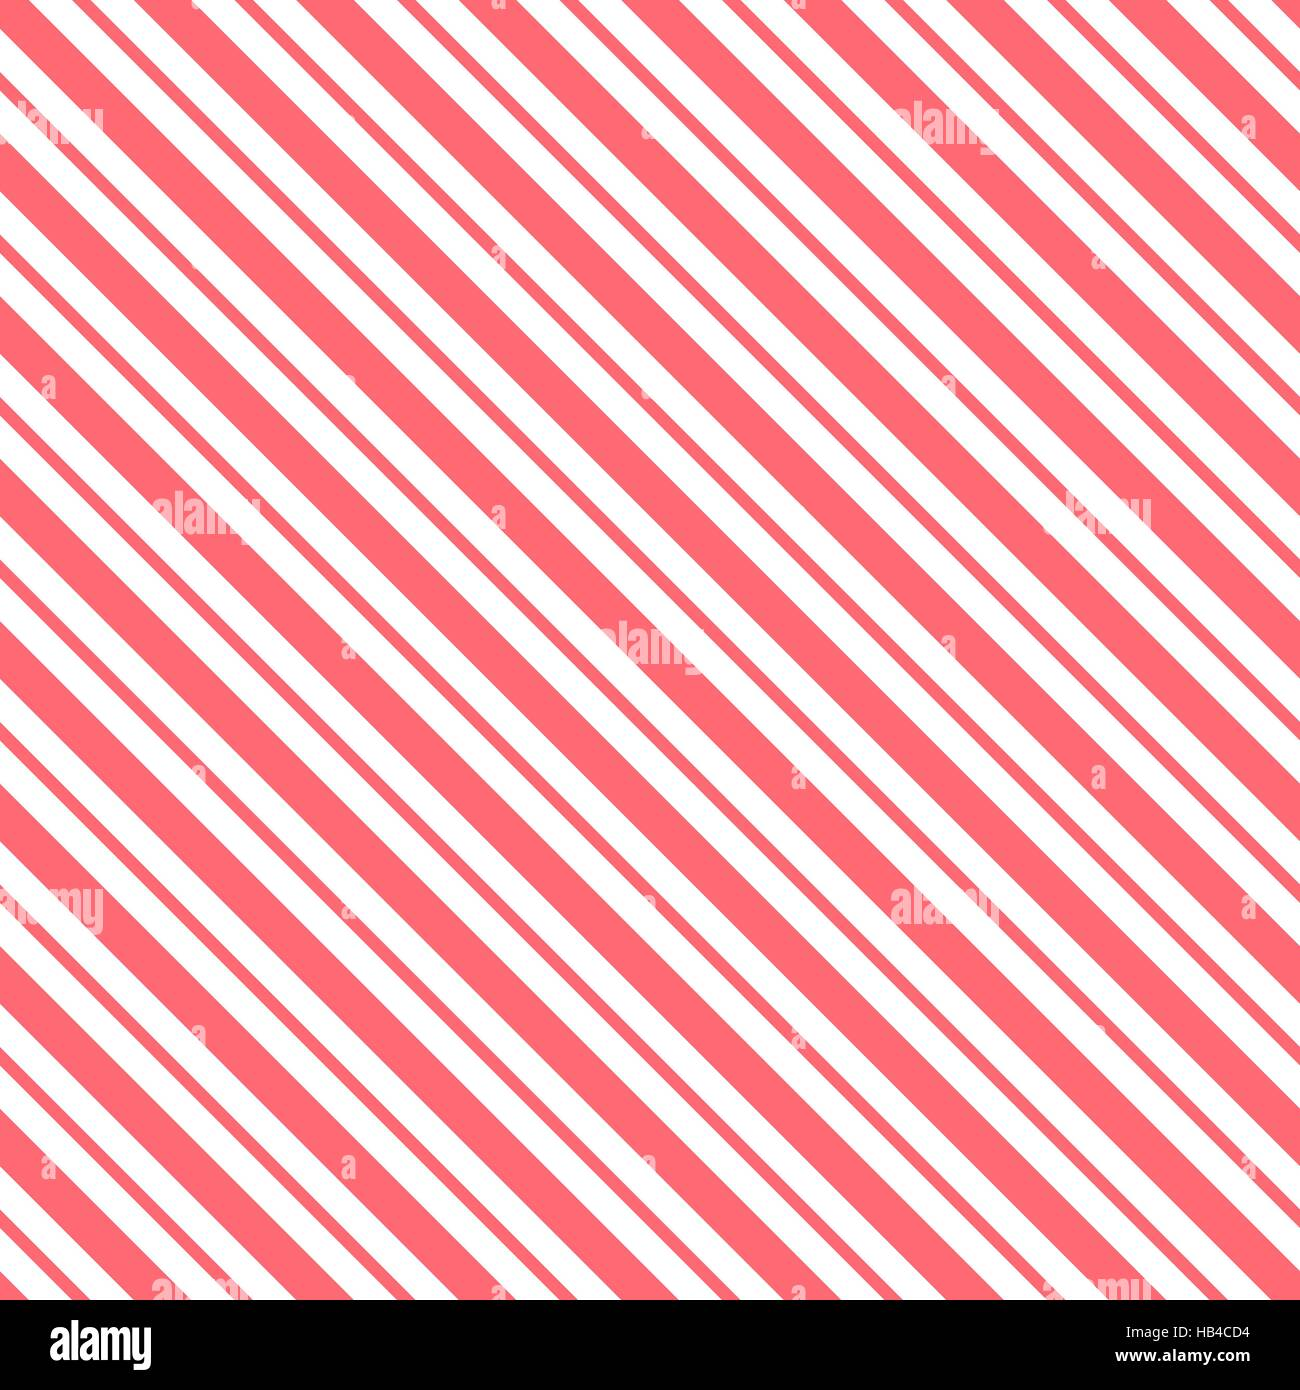 Red seamless tilted striped pattern packaging paper background in vector format - Stock Image